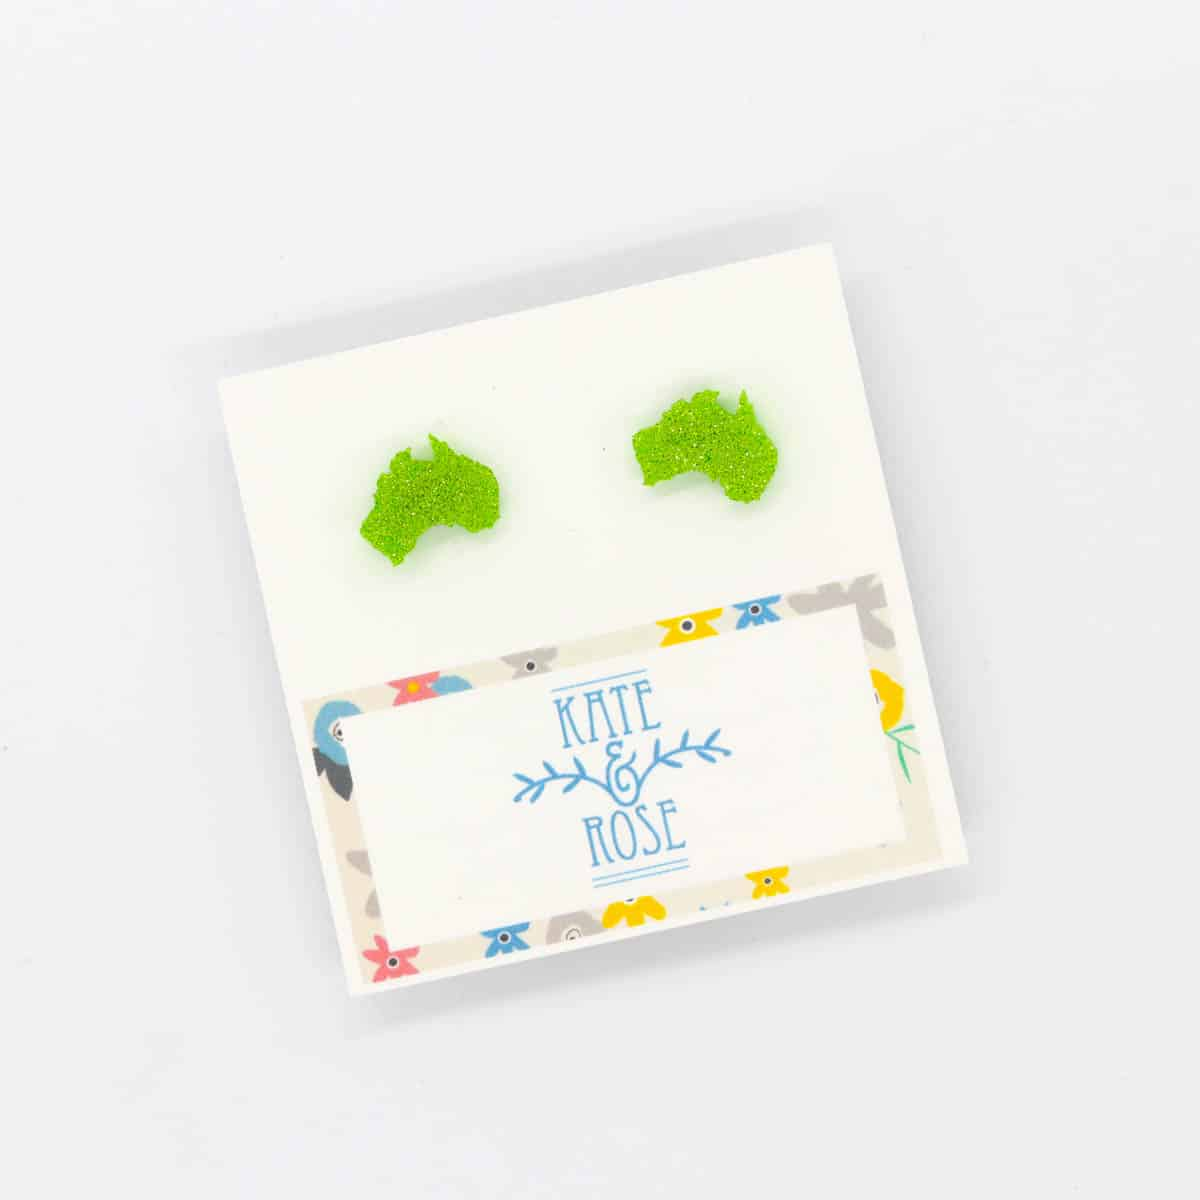 Lime Acrylic Aussie Map Earrings By Kate And Rose $14.95